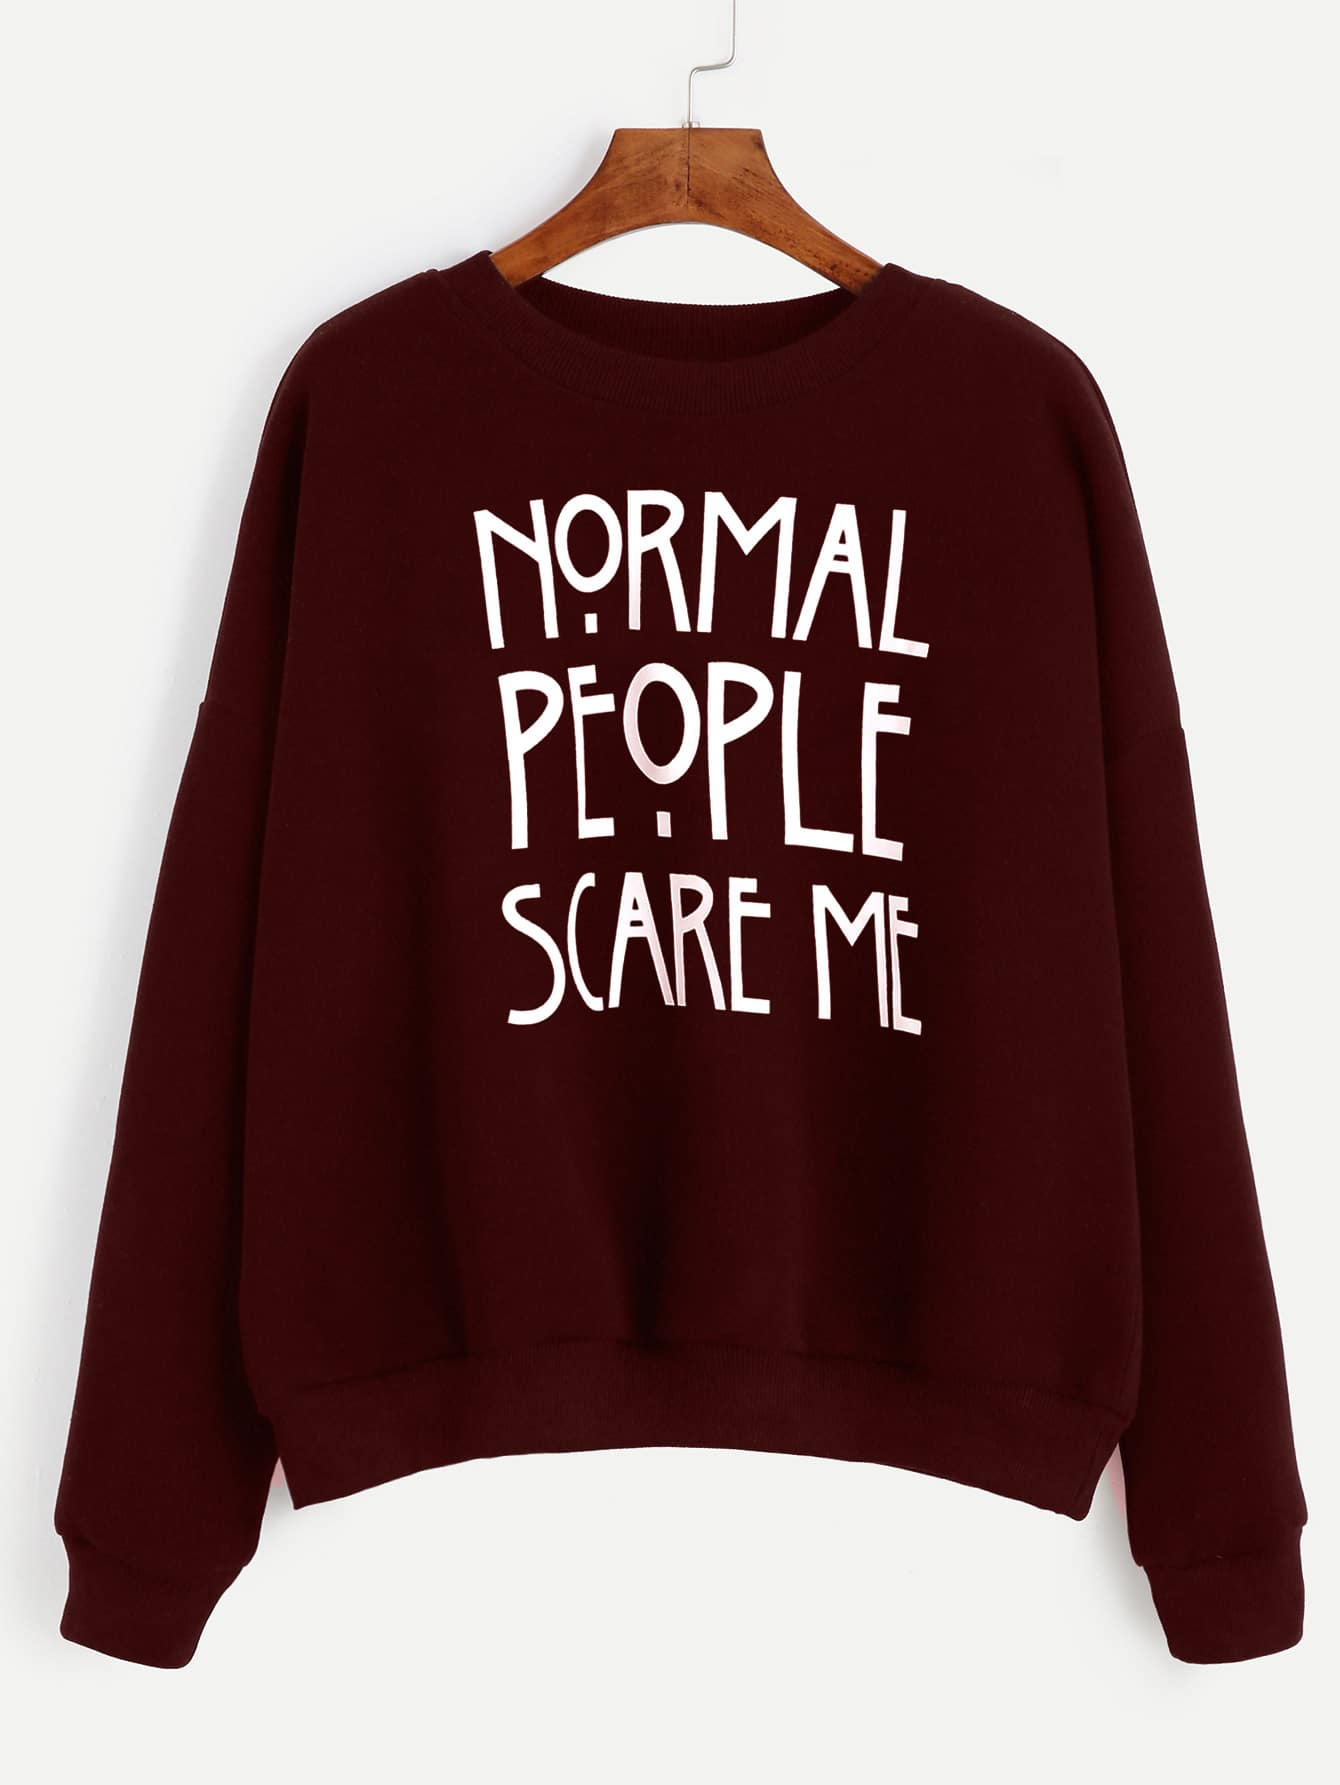 Burgundy Slogan Print Drop Shoulder SweatshirtBurgundy Slogan Print Drop Shoulder Sweatshirt<br><br>color: Burgundy<br>size: L,M,S